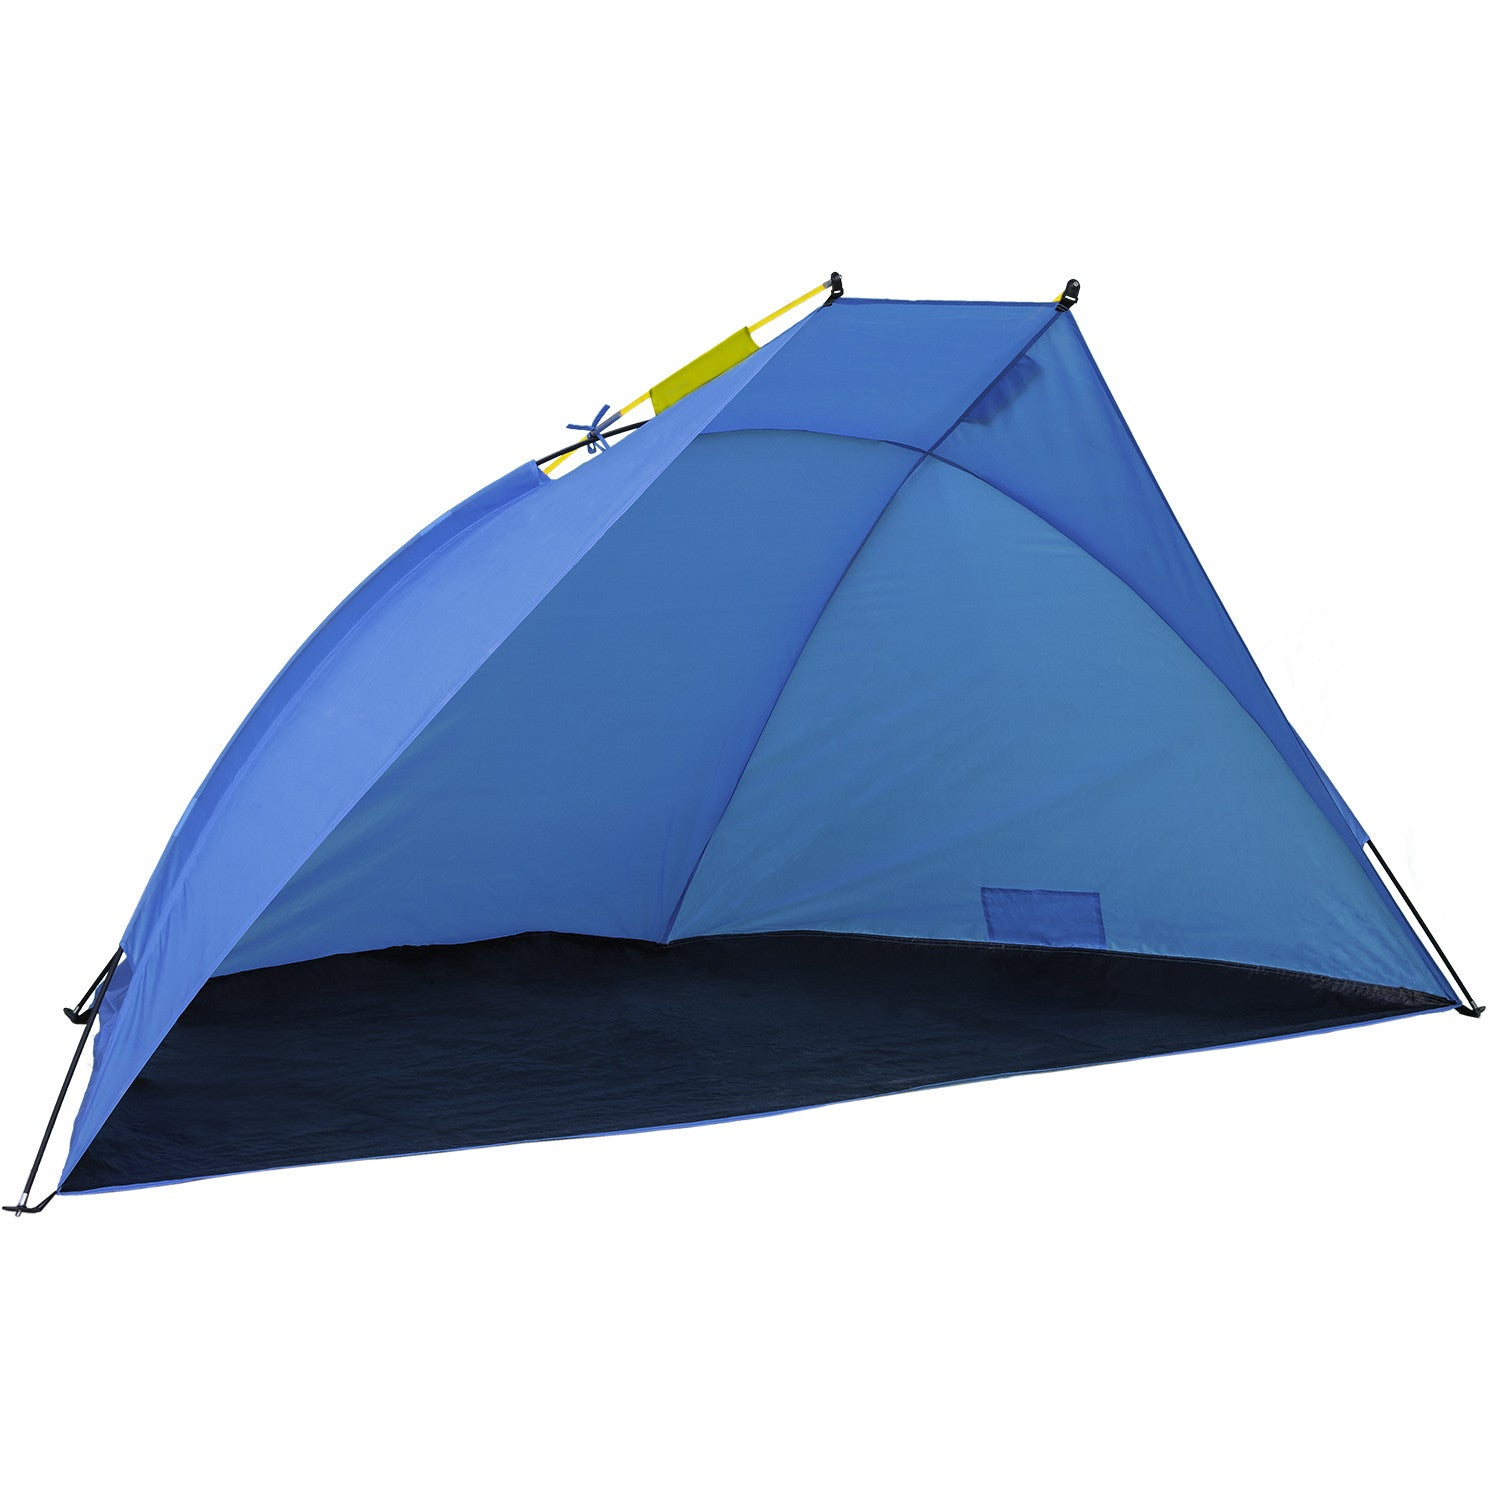 best service 9007b 30d86 Beach Shade Shelter Mars, 2 - 3 Person Anti UV Tent: Enjoy the Outdoors  With Comfort! Rain, Breeze & Sun Canopy for Babies, Kids & Adults. Easy Up  ...